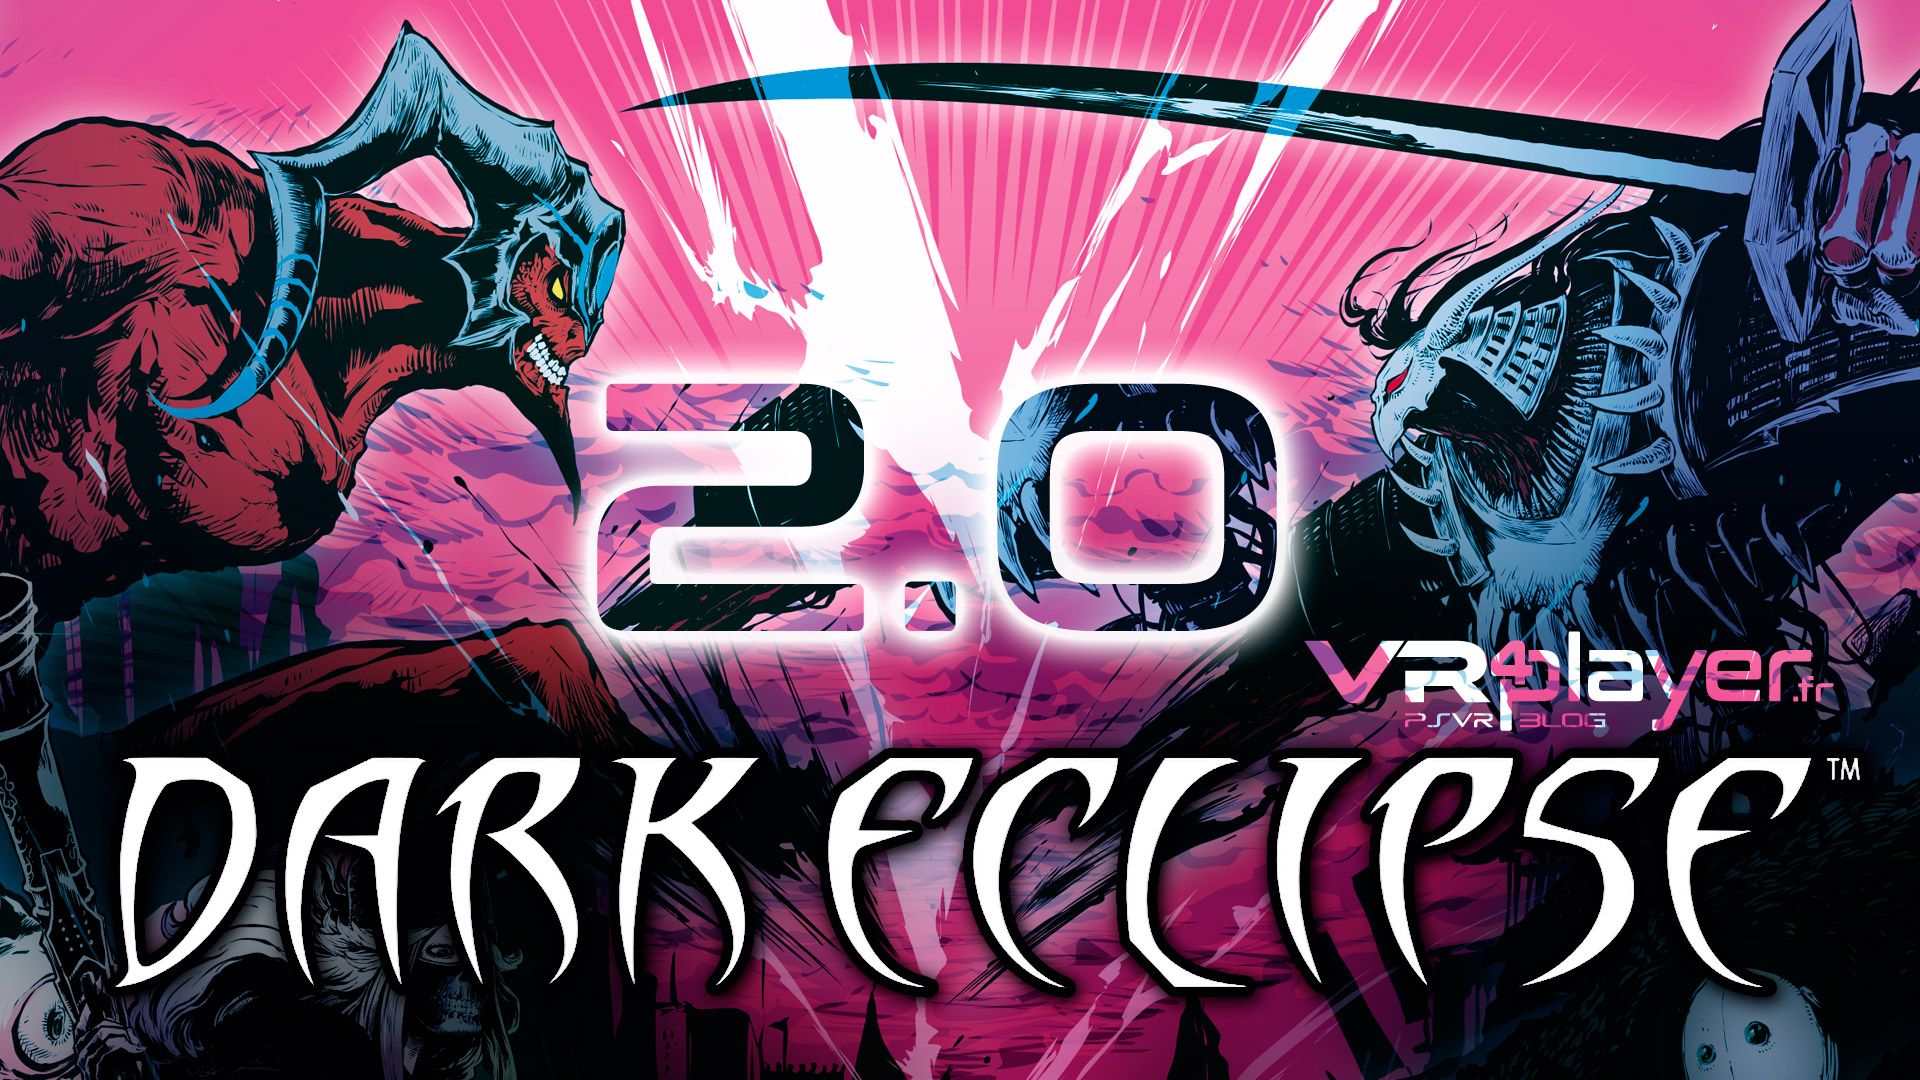 Dark Eclipse Update 2.0 VR4player PSVR PlayStation VR